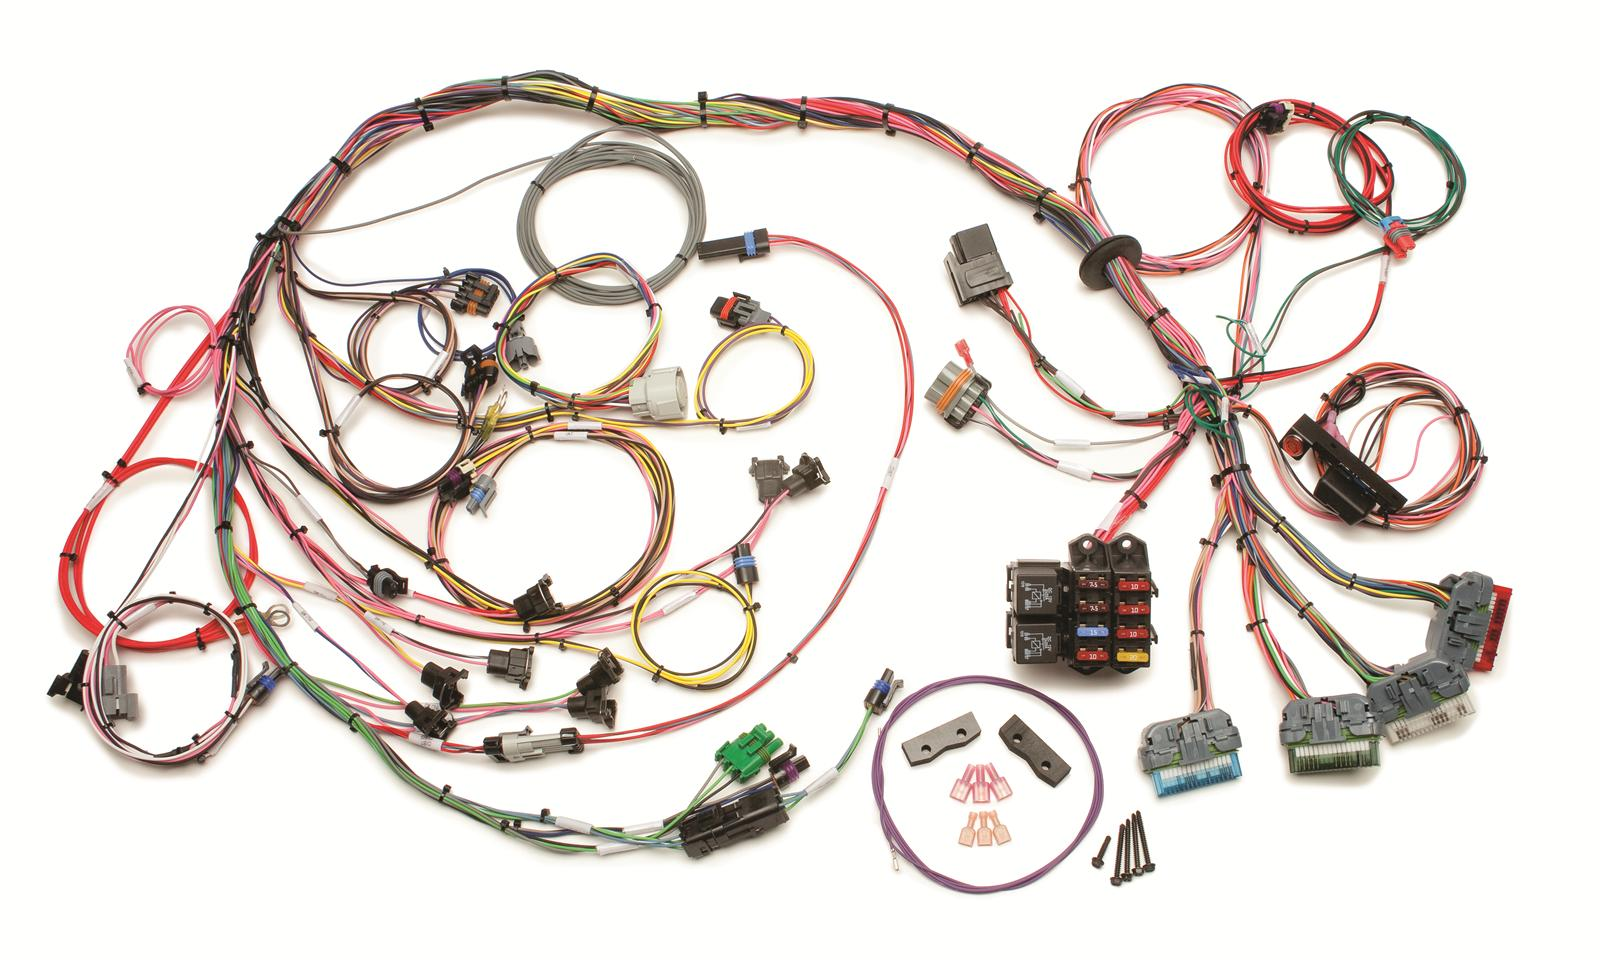 prf 60502_xl painless performance fuel injection harnesses 60502 free painless wiring harness at crackthecode.co